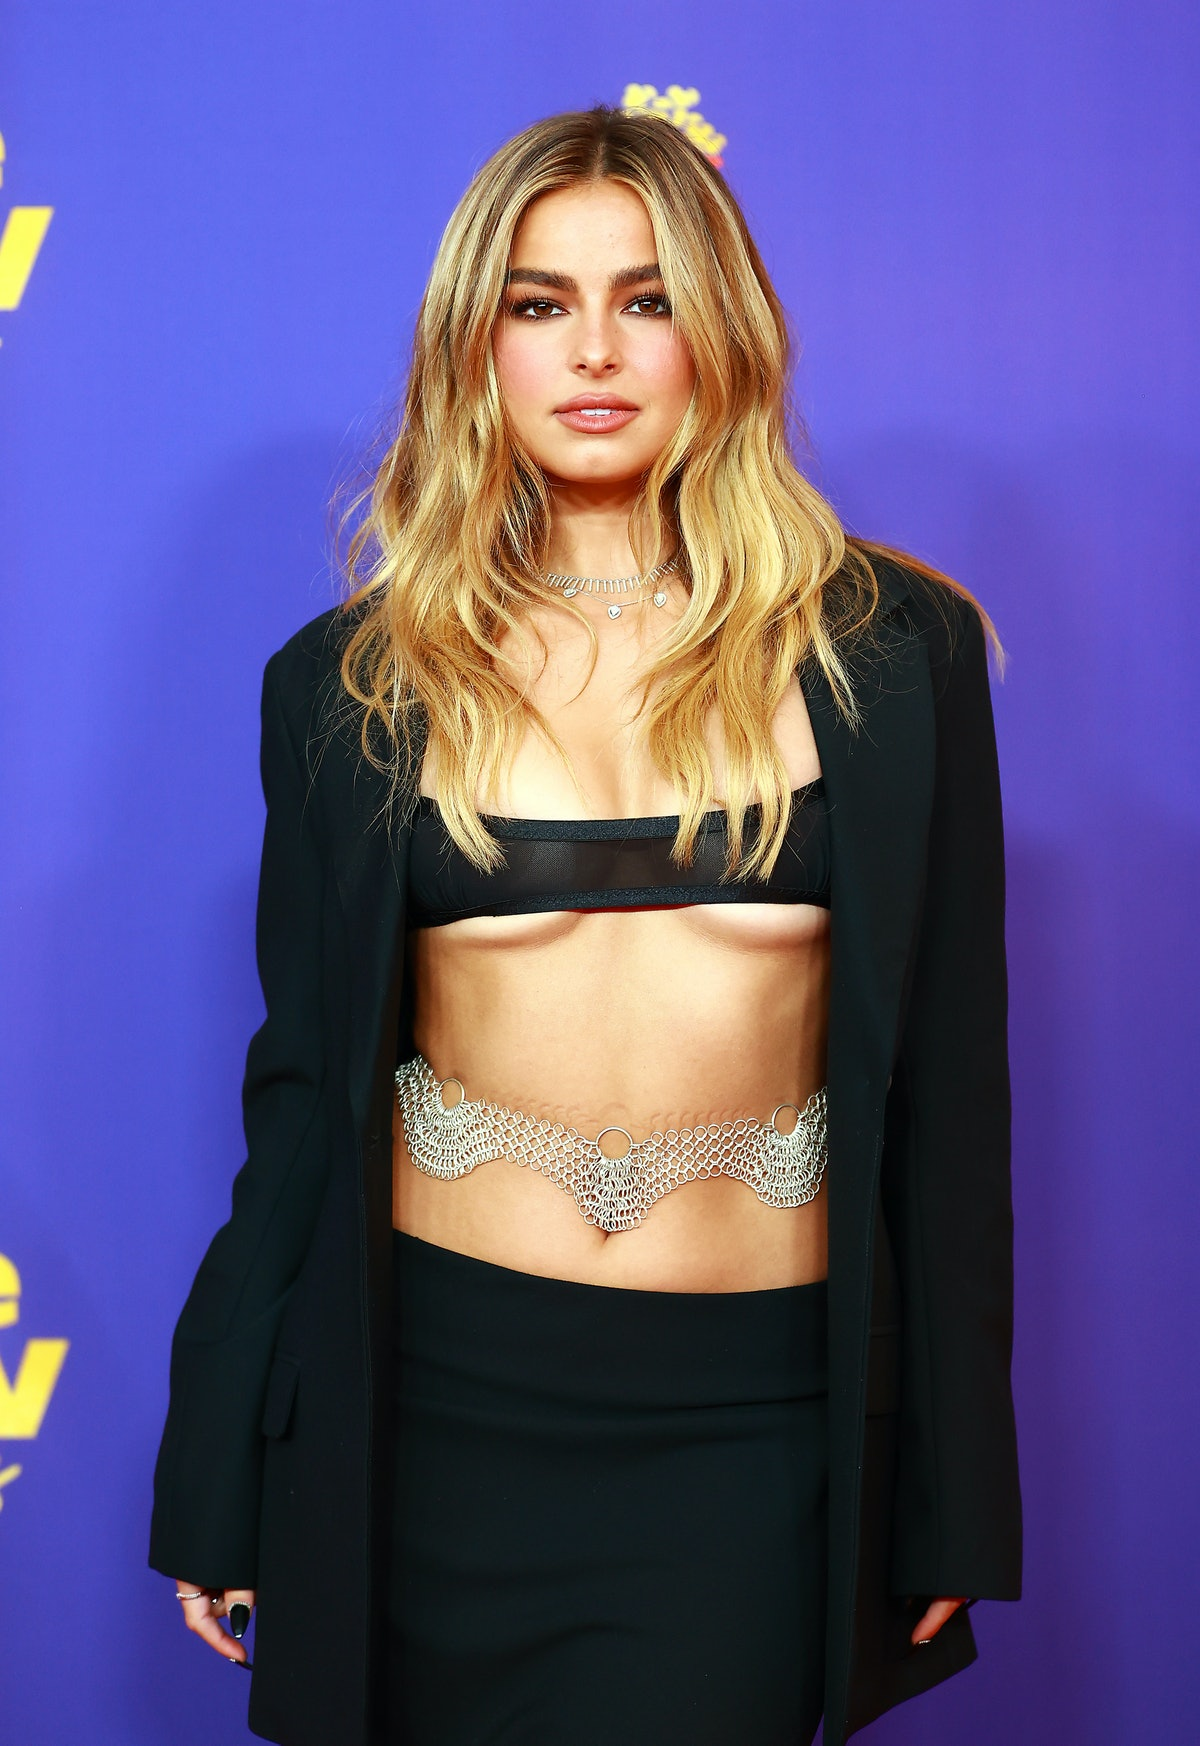 LOS ANGELES, CALIFORNIA - MAY 16: Addison Rae attends the 2021 MTV Movie & TV Awards at the Hollywood Palladium on May 16, 2021 in Los Angeles, California. (Photo by Matt Winkelmeyer/2021 MTV Movie and TV Awards/Getty Images for MTV/ViacomCBS)